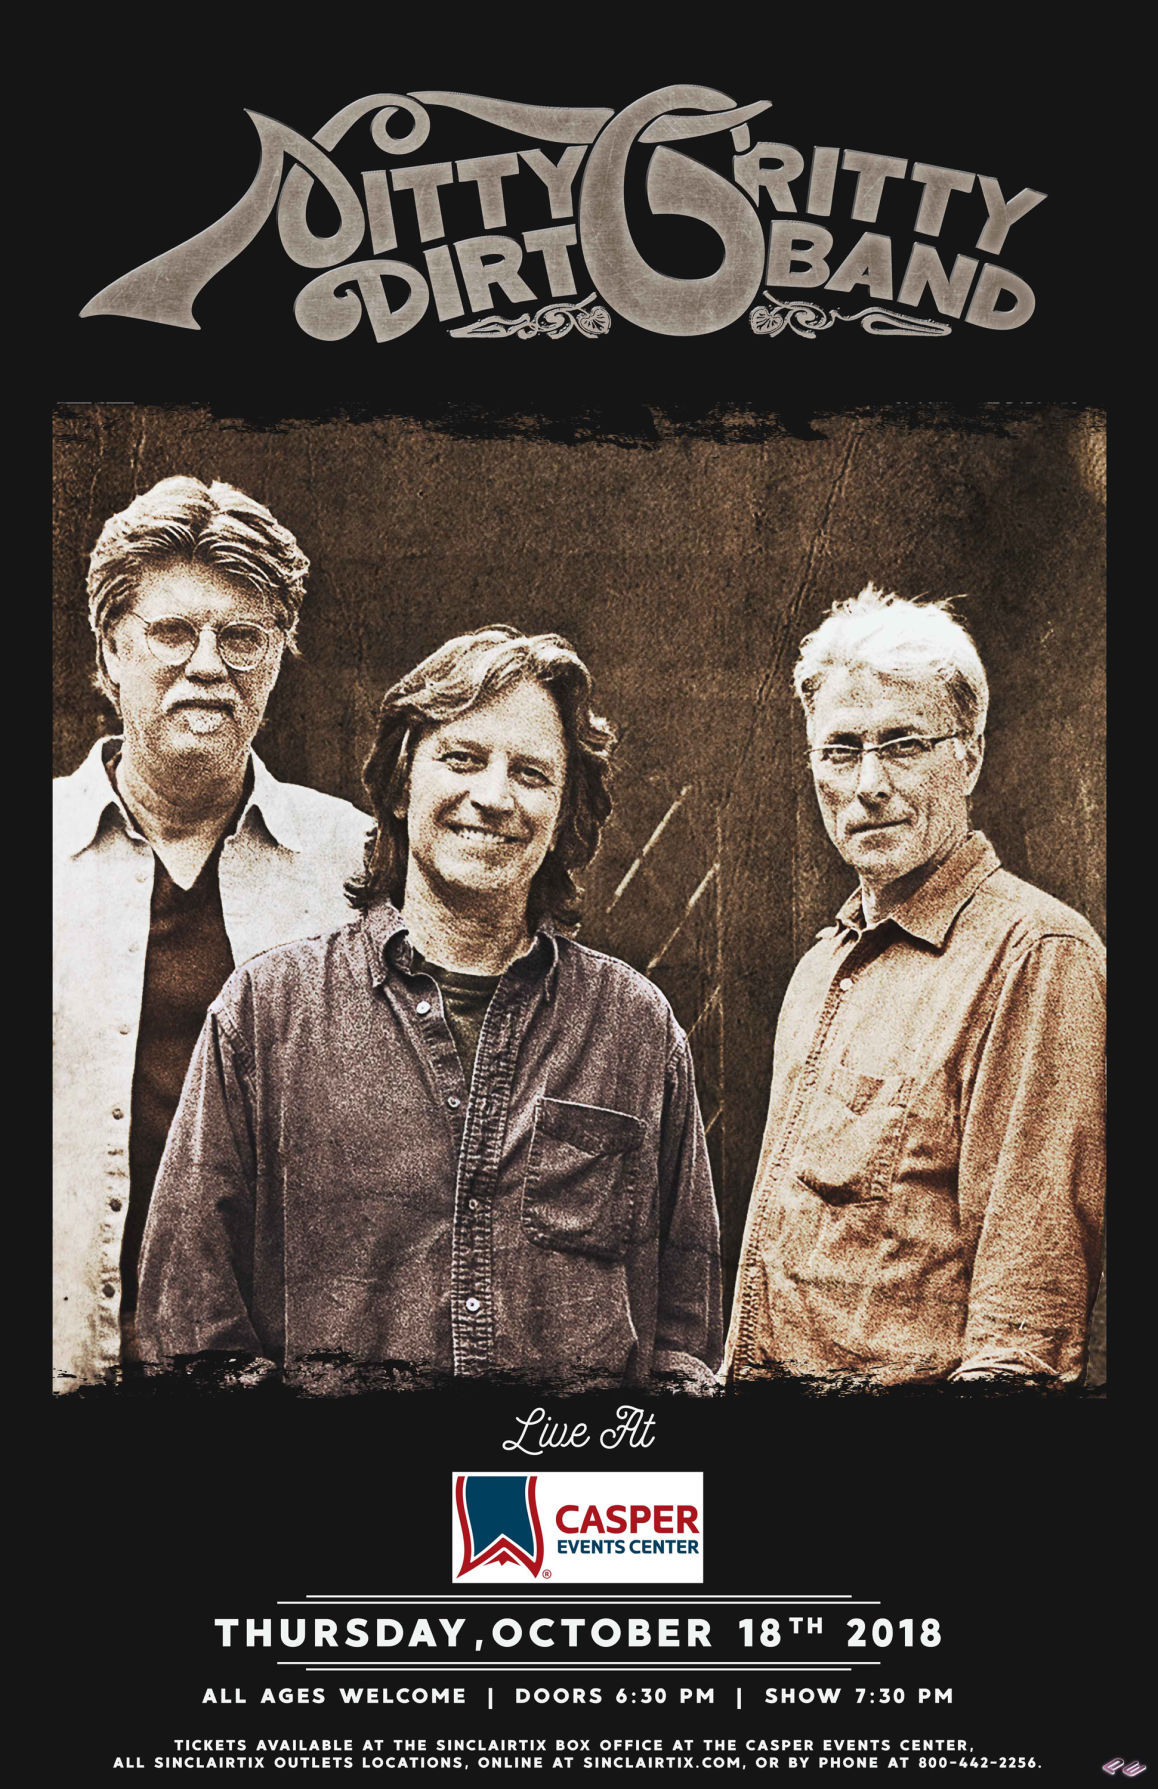 Nitty Gritty Dirt Band brings decades of hits to Casper | Music ...